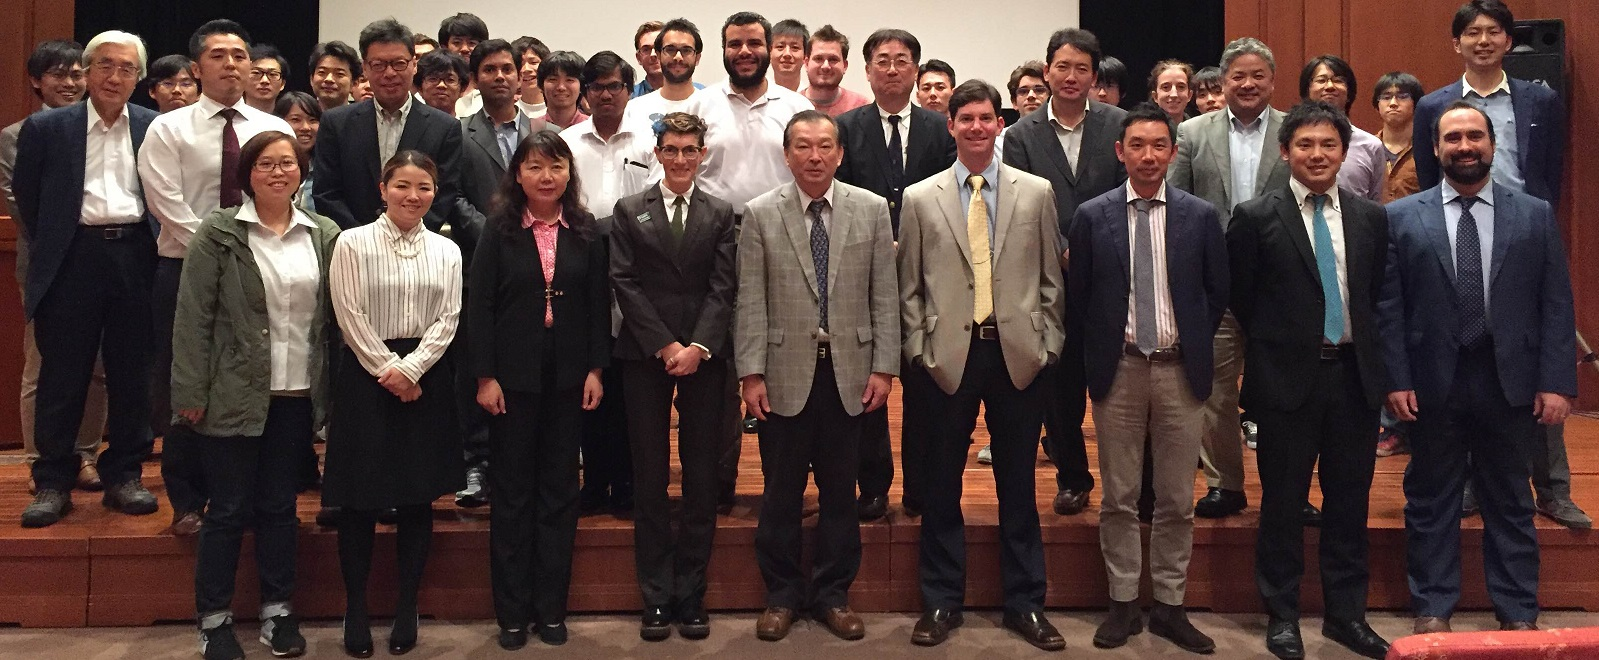 26th October: Osaka University, symposium hosted by Professor Shinobu Itoh (Front row, far right: Dalton Transactions Executive Editor, Andrew Shore. Second row, second left: RSC Japan representative Hiromitsu Urakami)